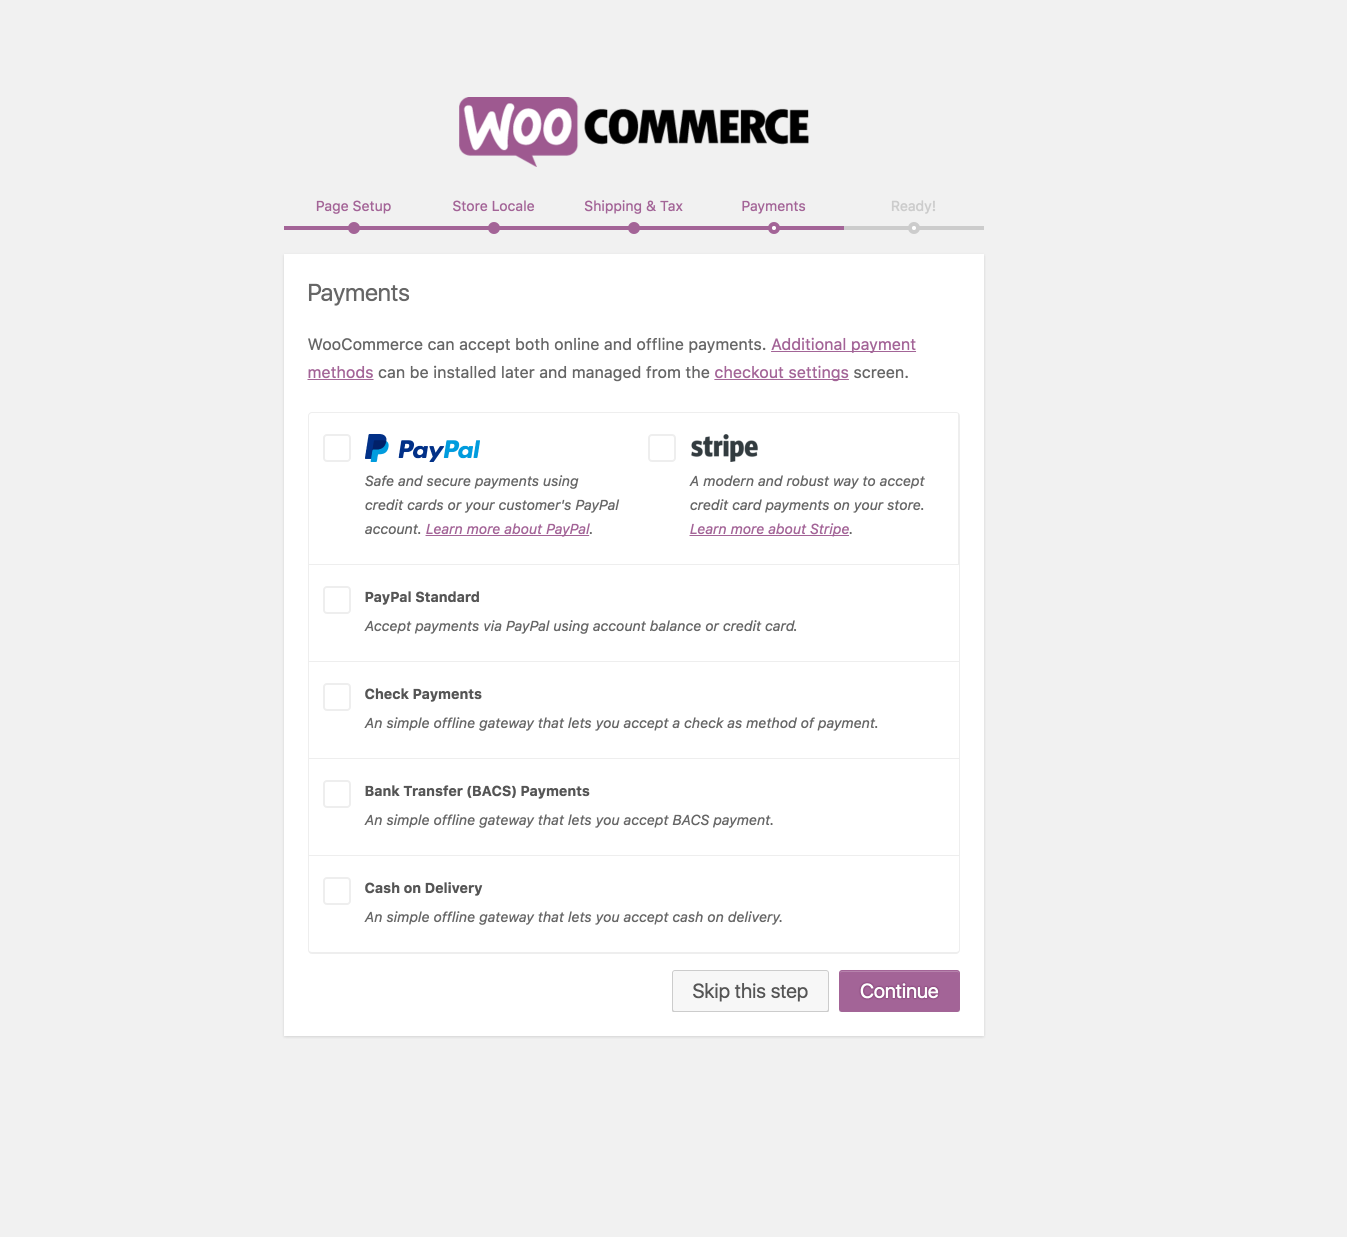 New payment options are now presented in the WooCommerce onboarding wizard.